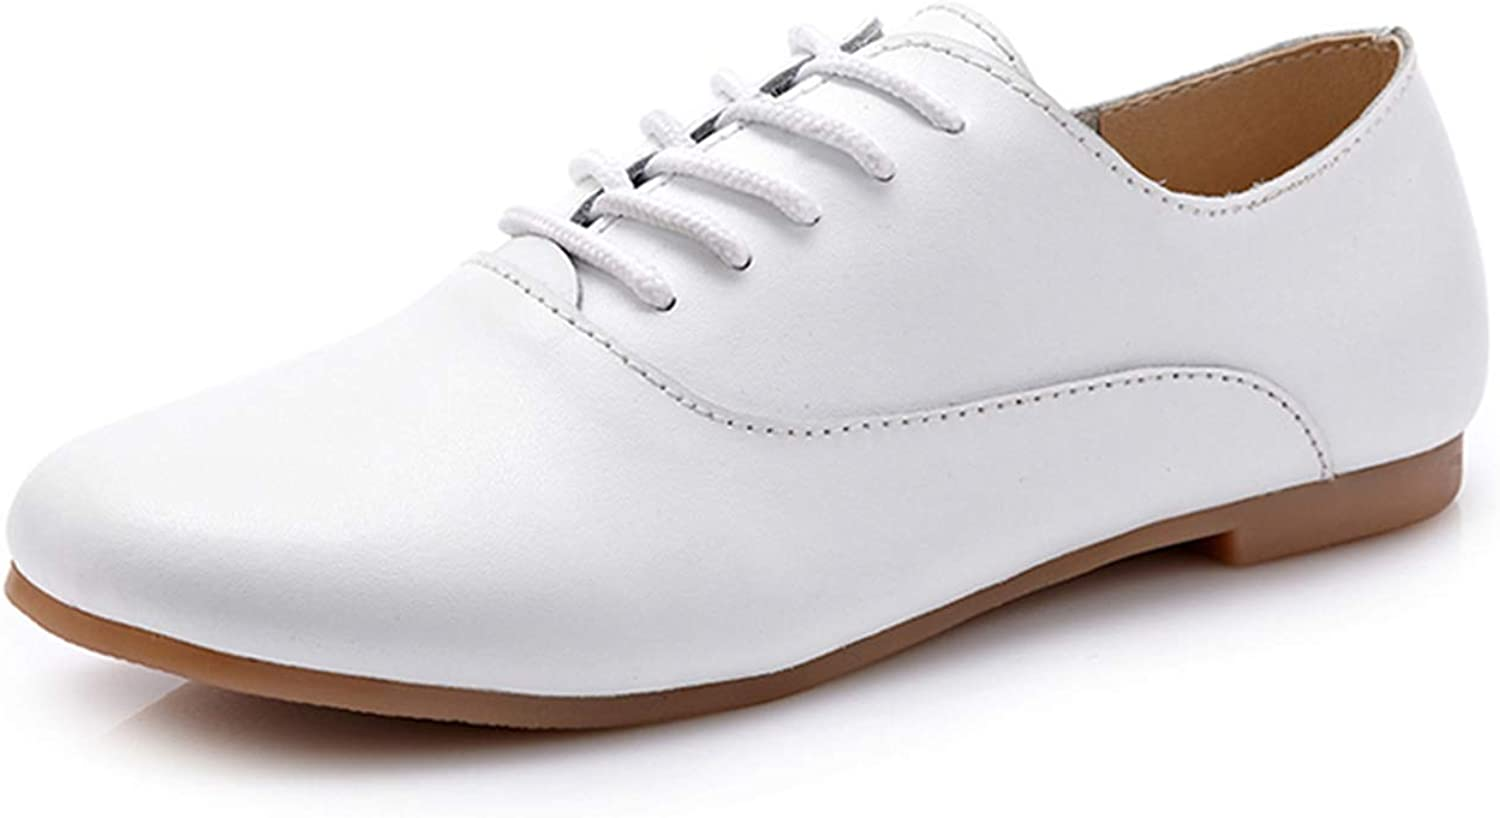 Spring Women Oxford Shoes Flats Shoes Women Genuine Leather Shoes Moccasins Lace Up White Shoes 051